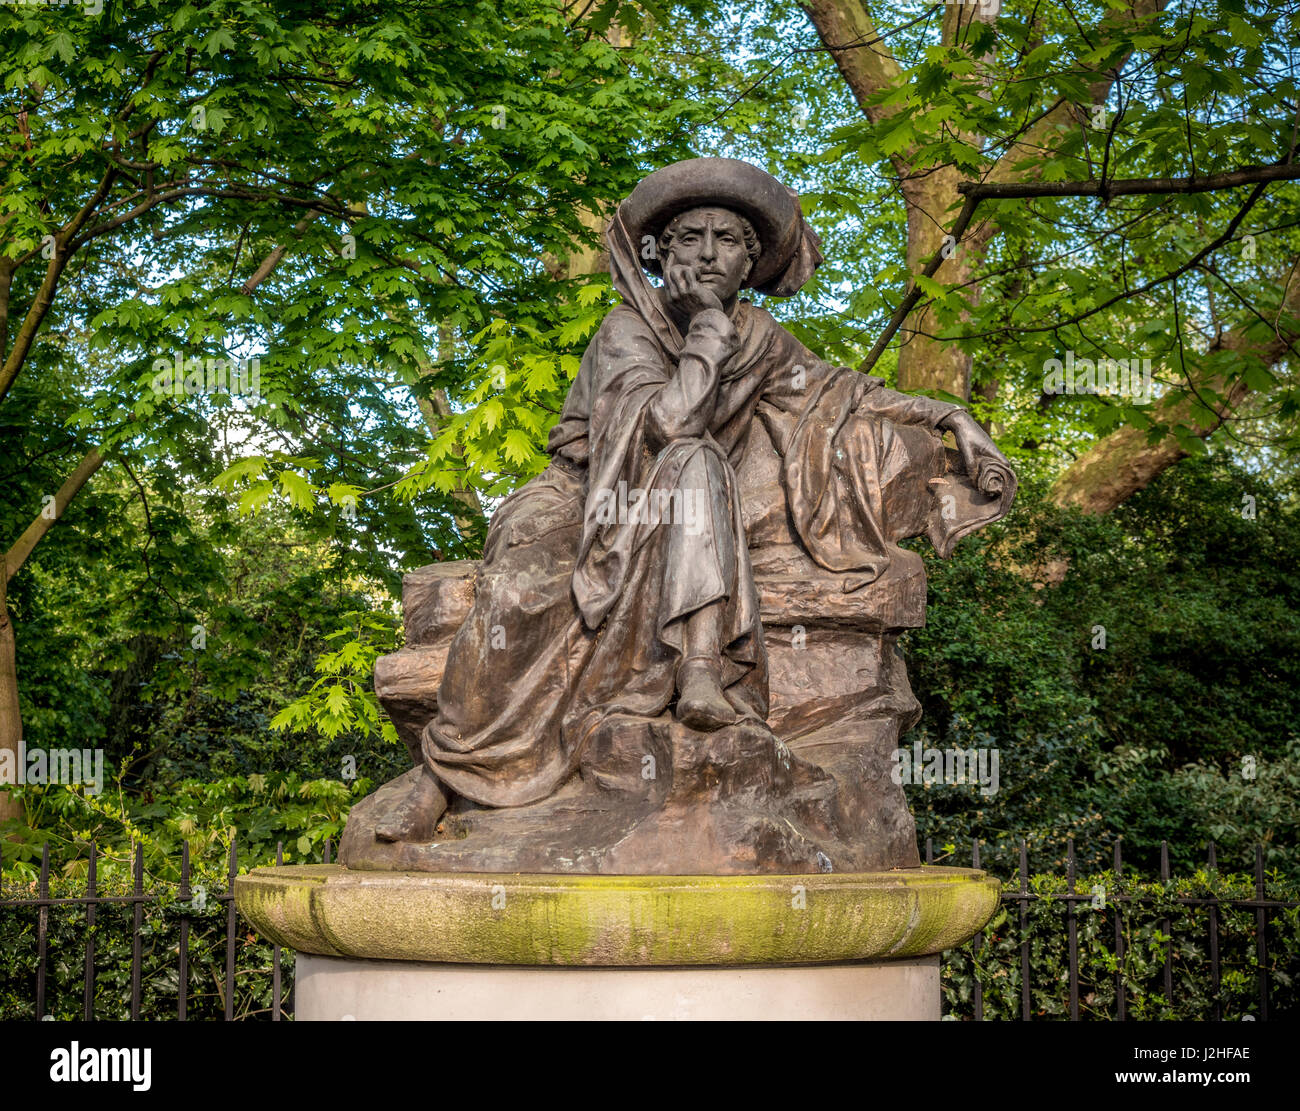 Statue of Prince Henry the Navigator in Belgrave Square, London. By Portuguese sculptor Jose Simoes de Almeida. - Stock Image